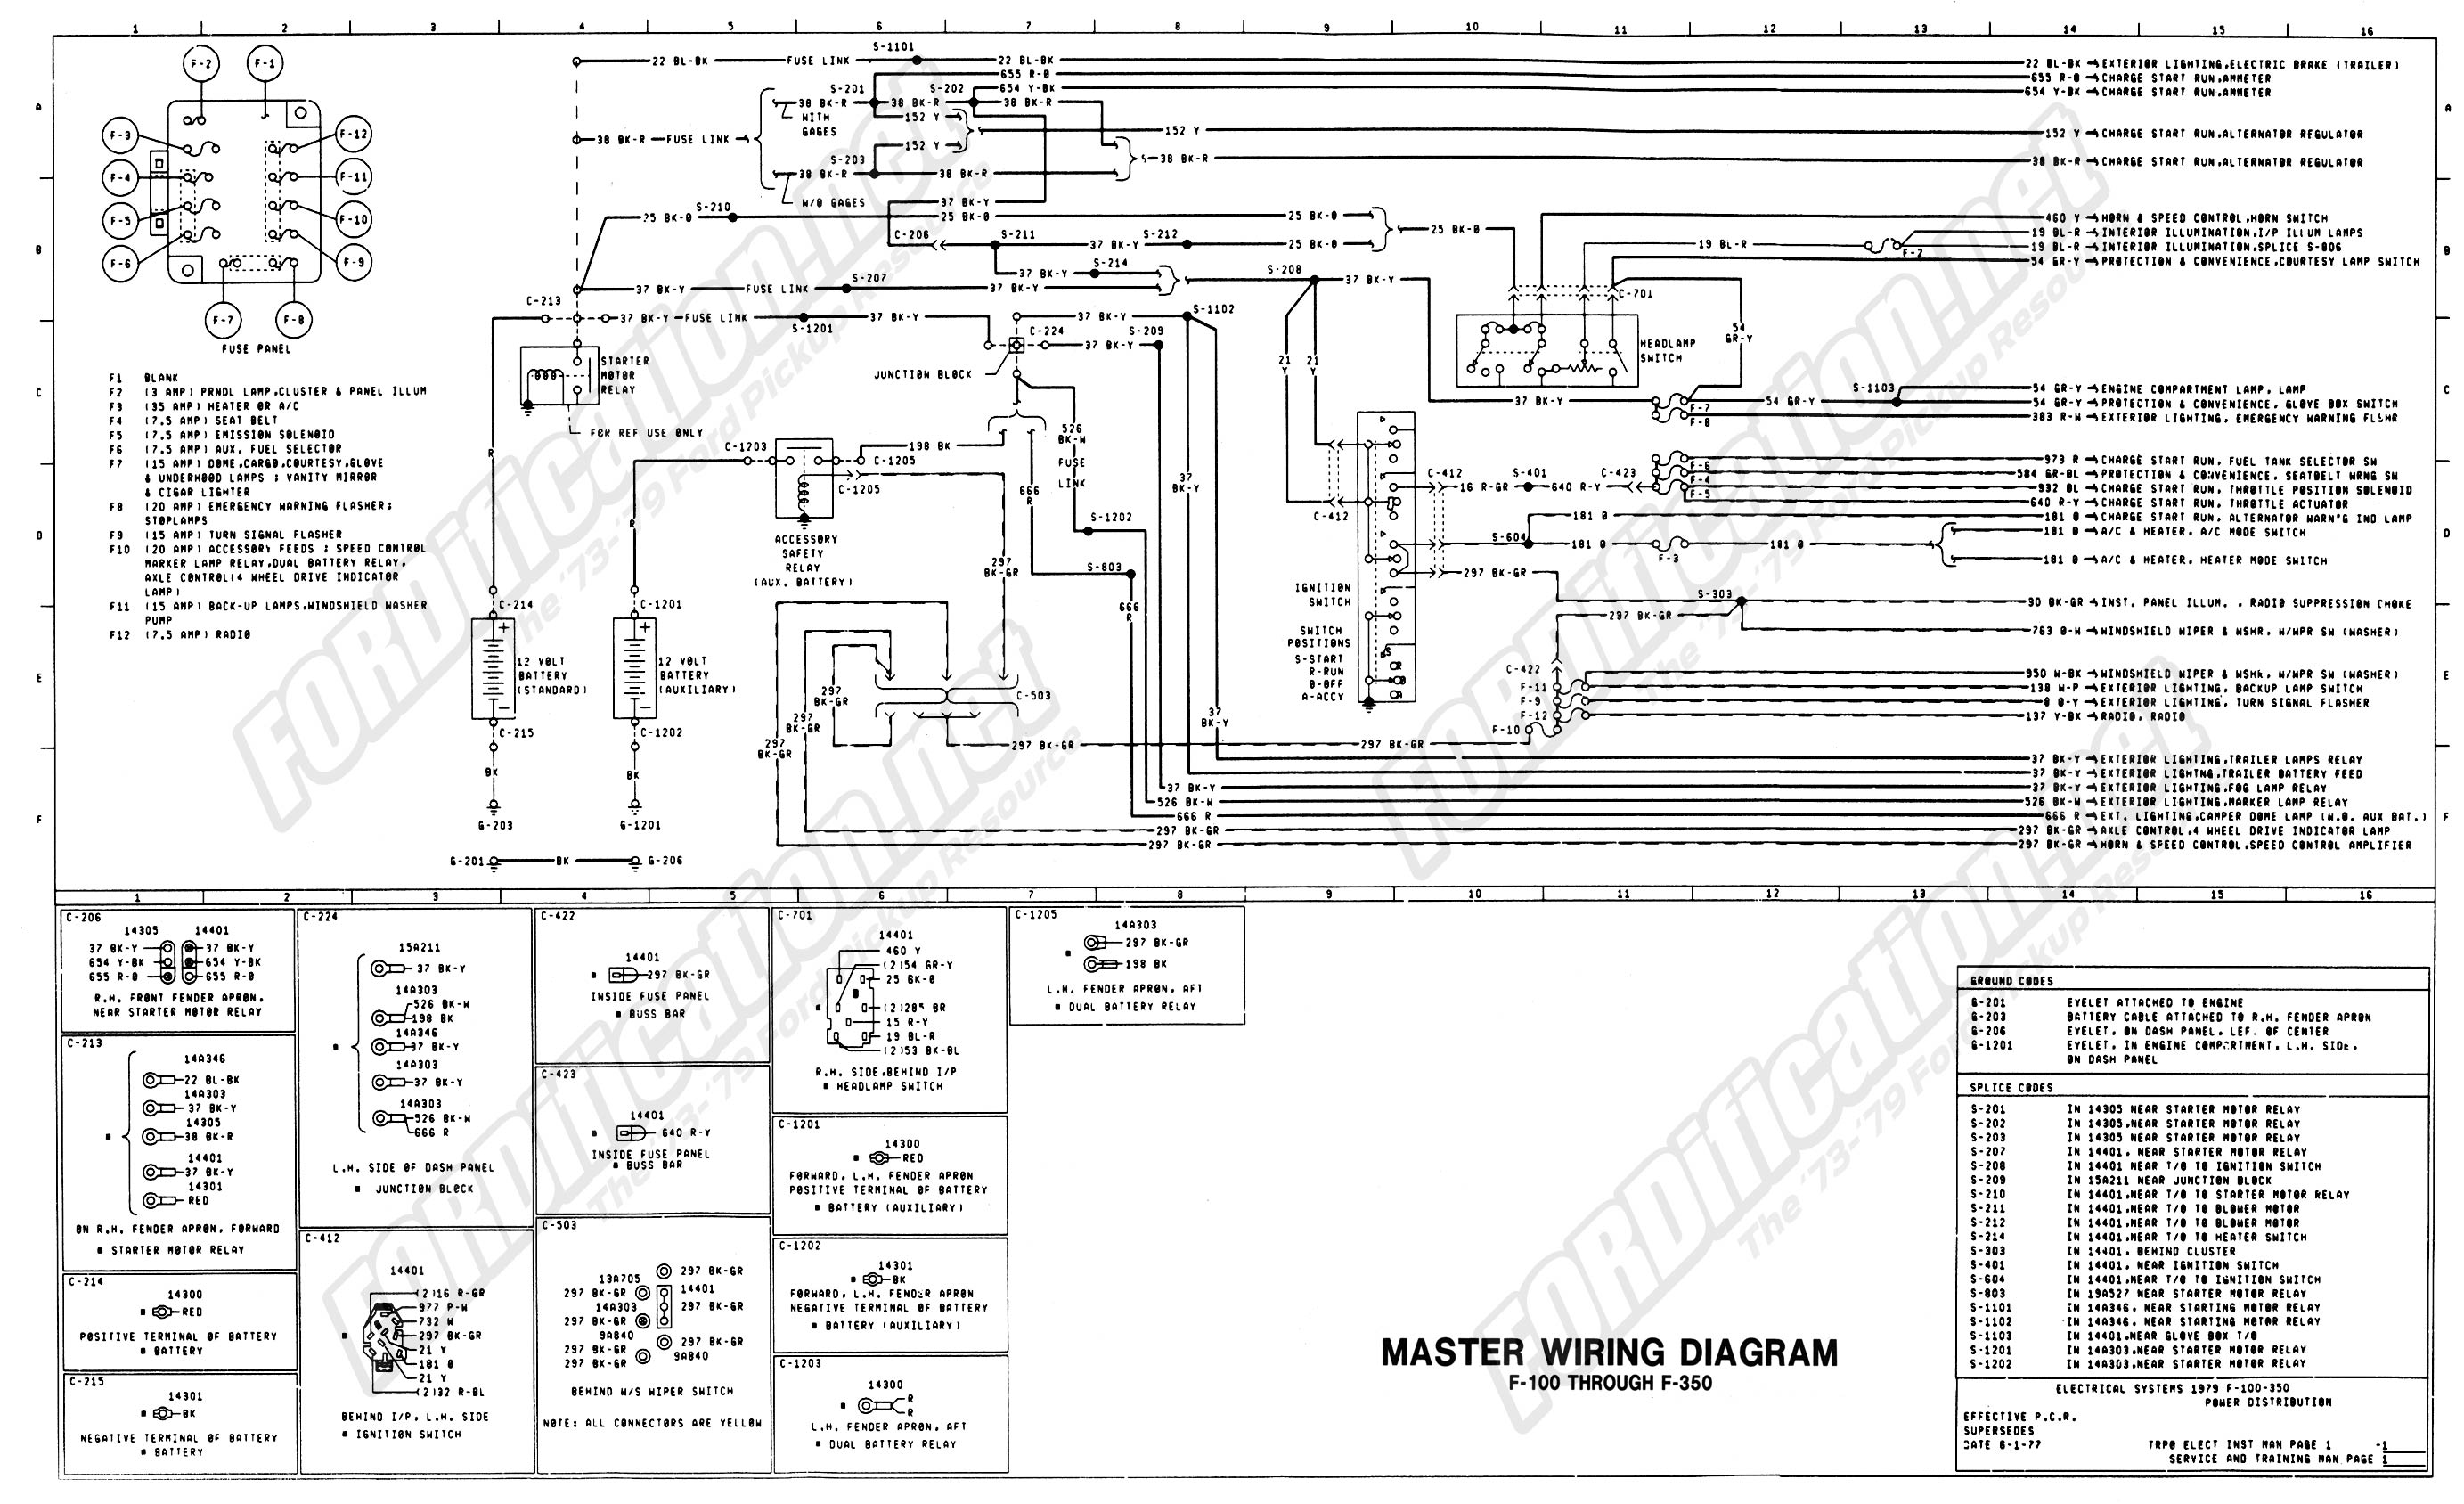 wiring_79master_1of9 1973 1979 ford truck wiring diagrams & schematics fordification net  at honlapkeszites.co